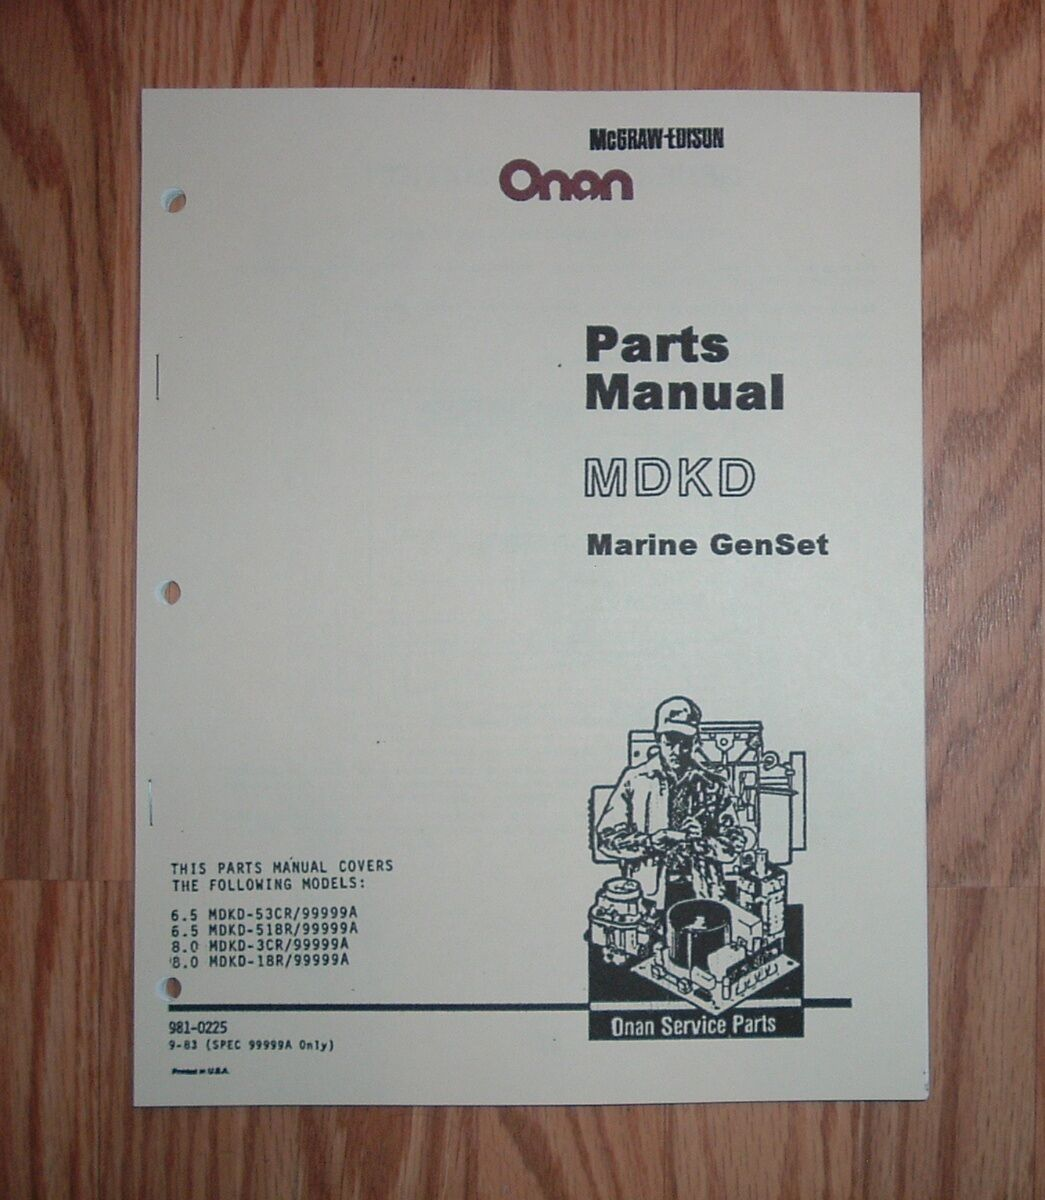 Onan Mdkd Parts Manual 6 5 Rv Generator Control Wiring Diagram Spec 99999a Marine Genset Illustrated List Rh Ebay Com